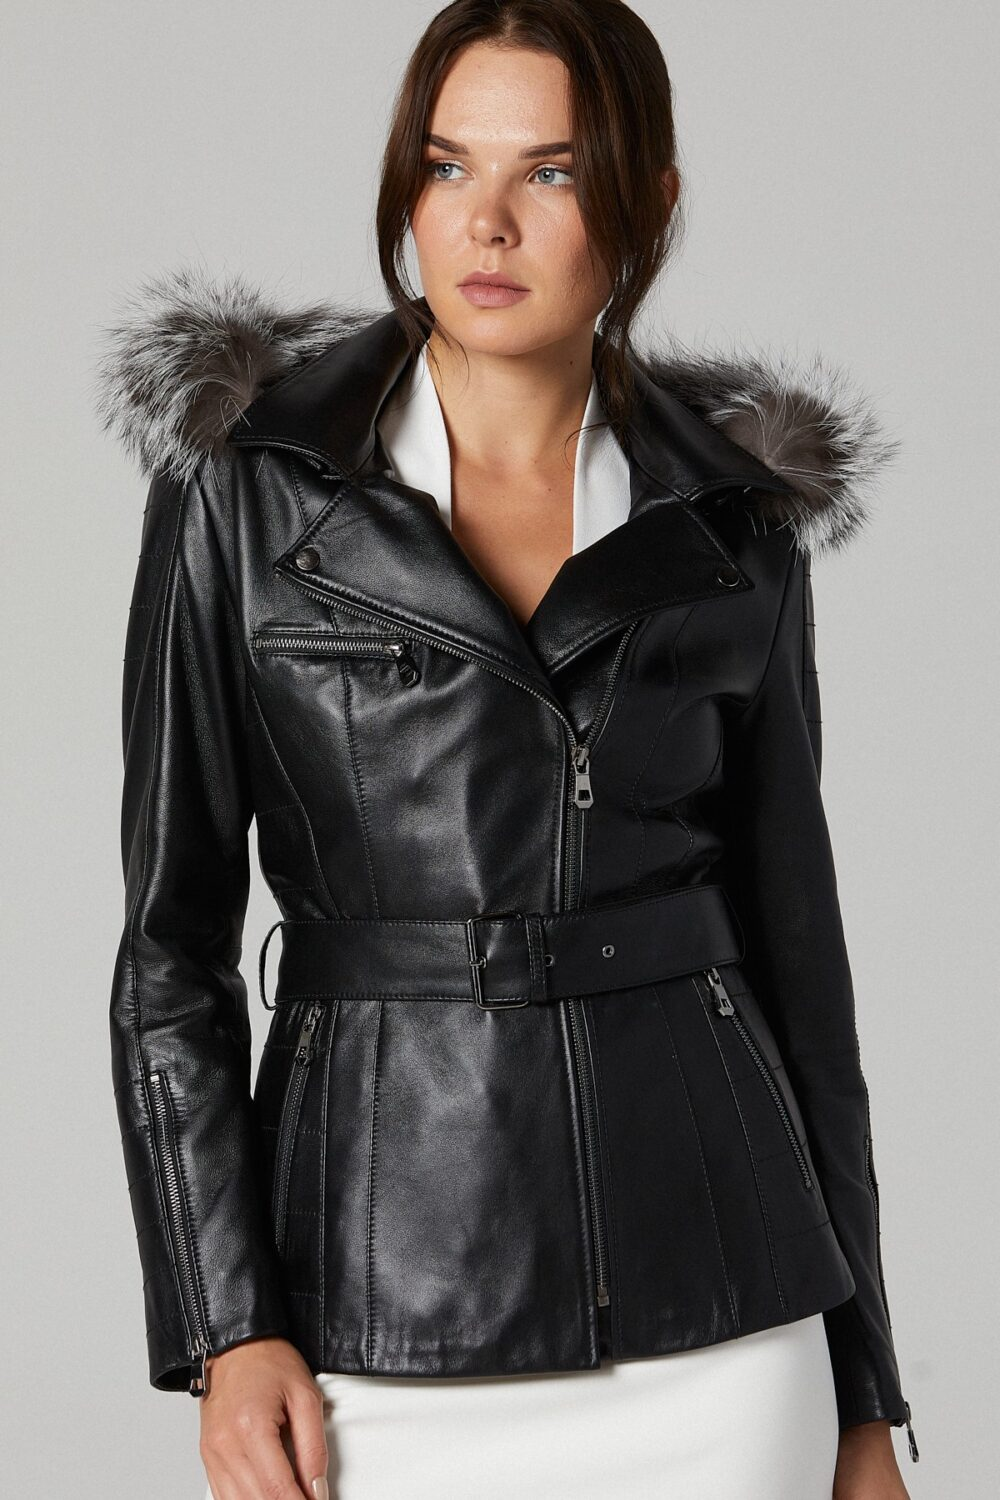 Clubmonaco Womens Leather Jacket